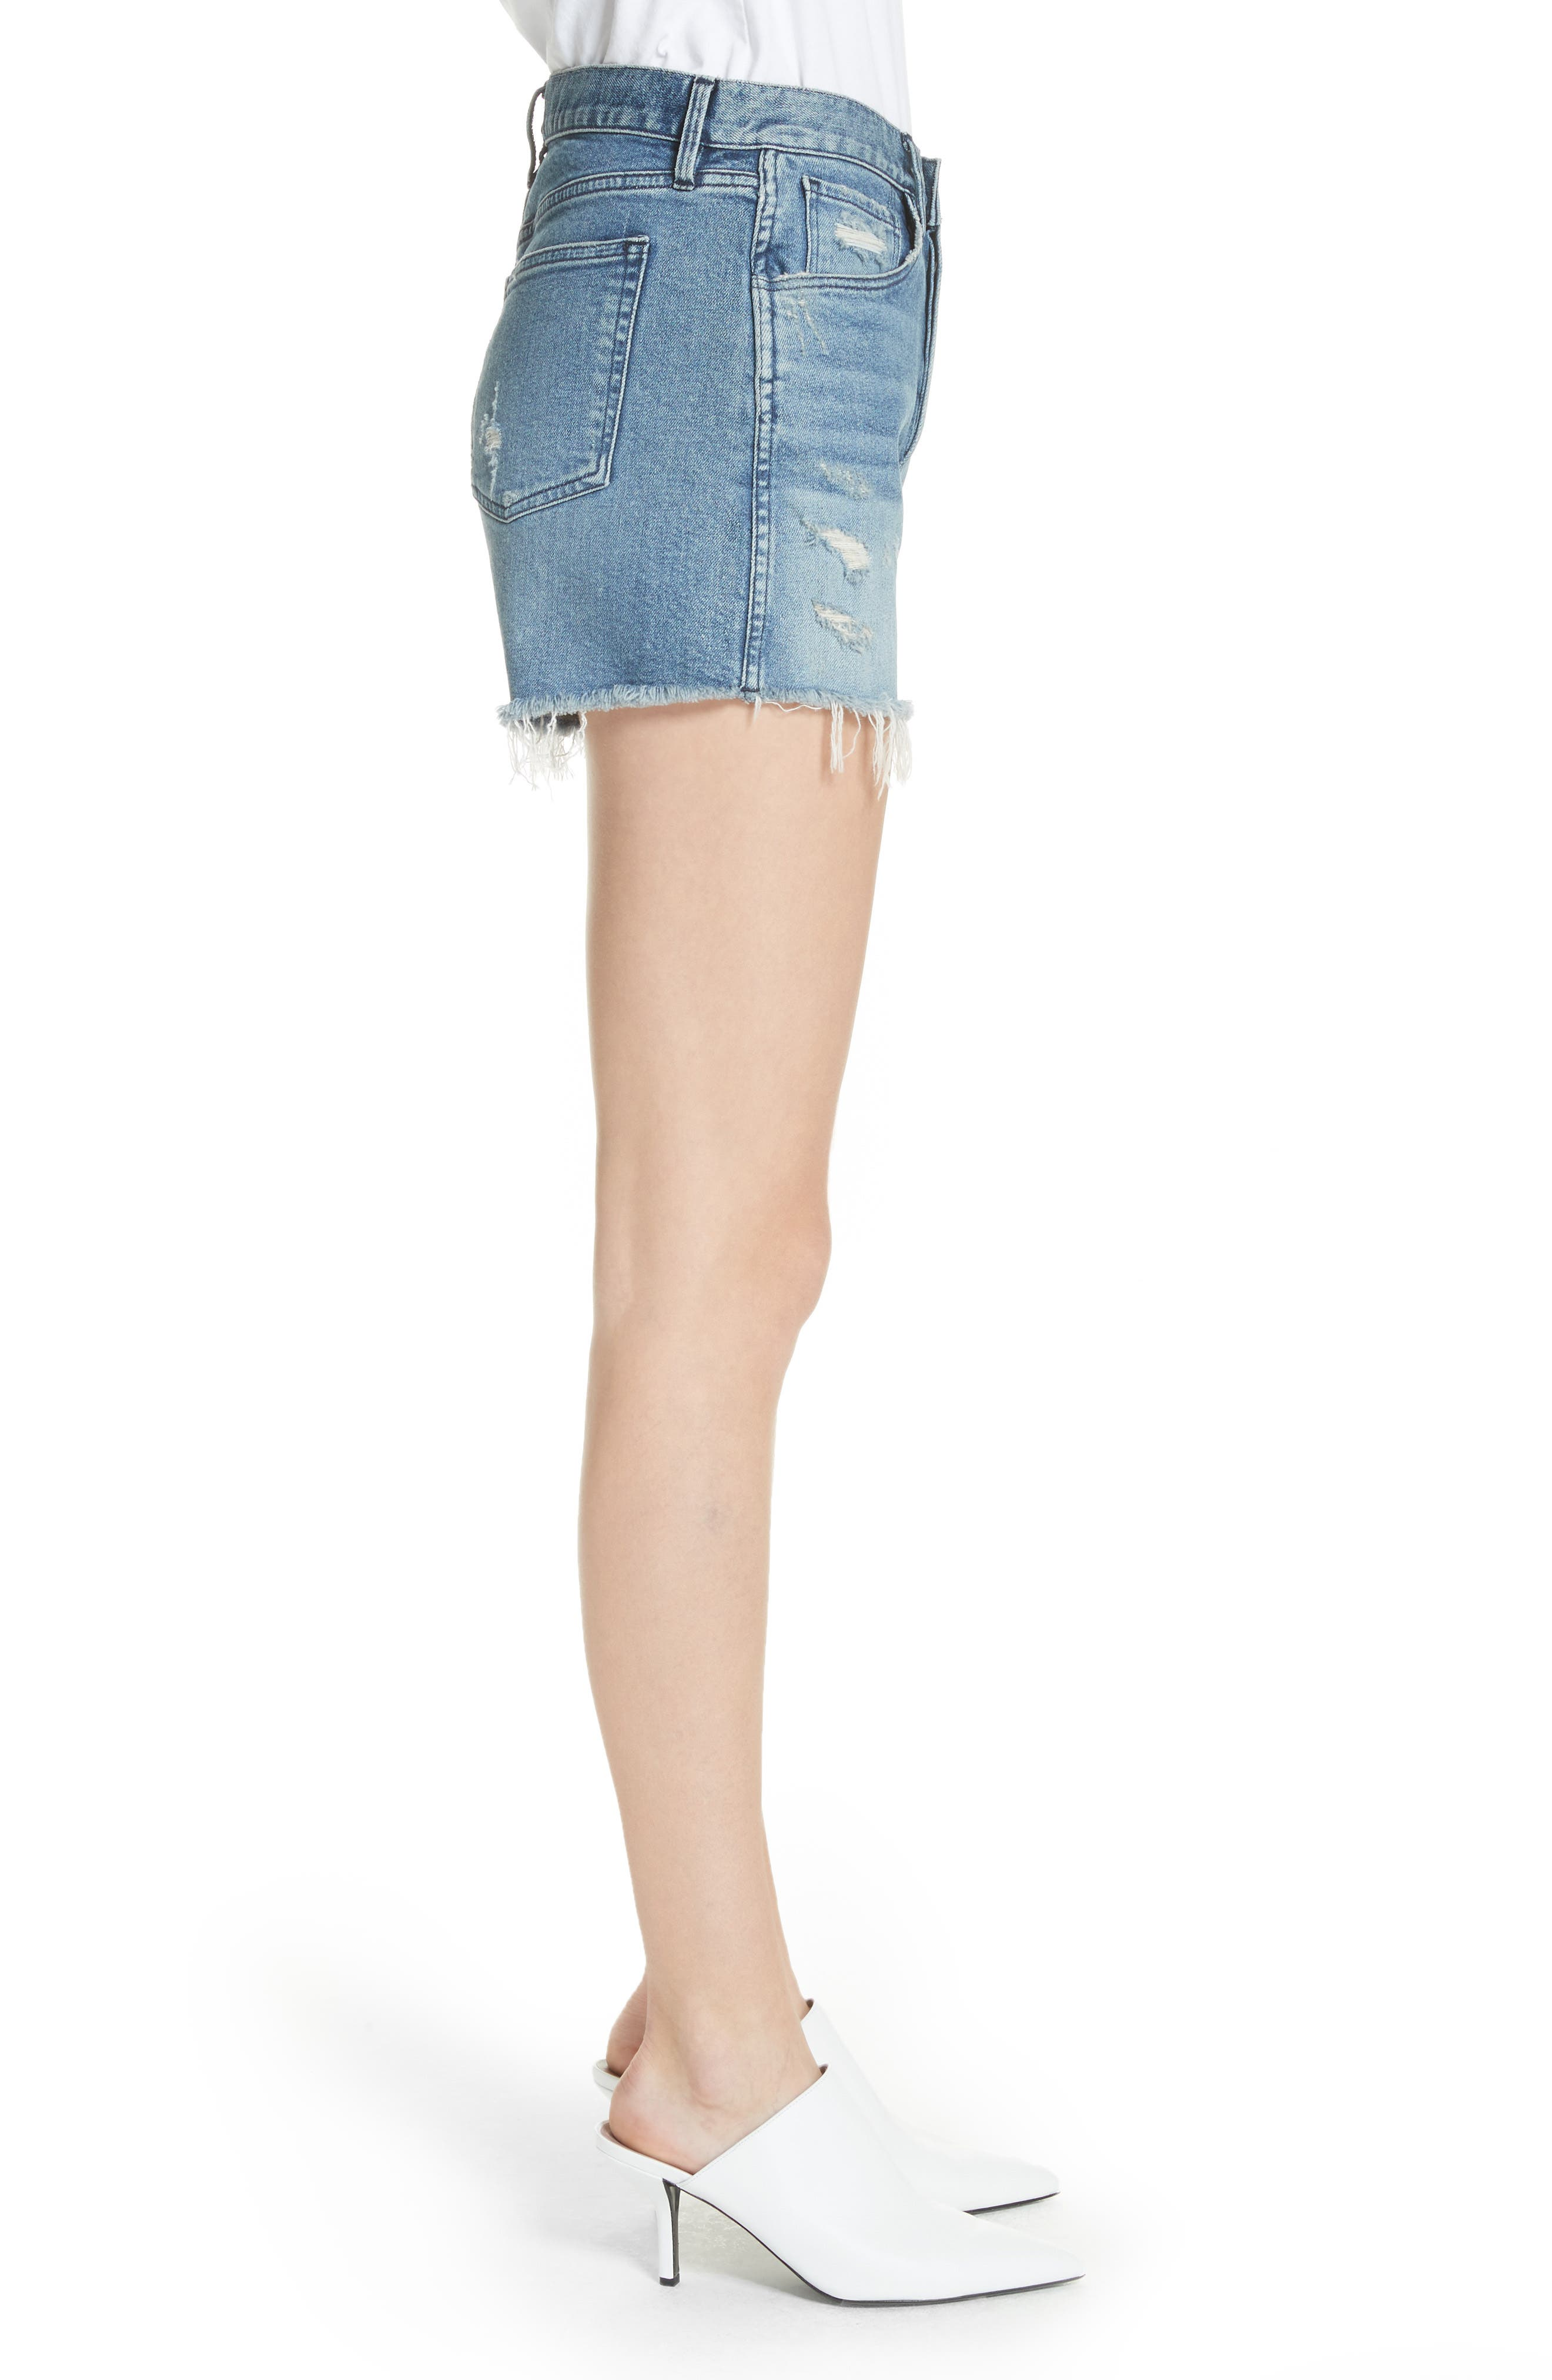 W4 Blake Raw Hem Denim Shorts,                             Alternate thumbnail 3, color,                             CHANCE